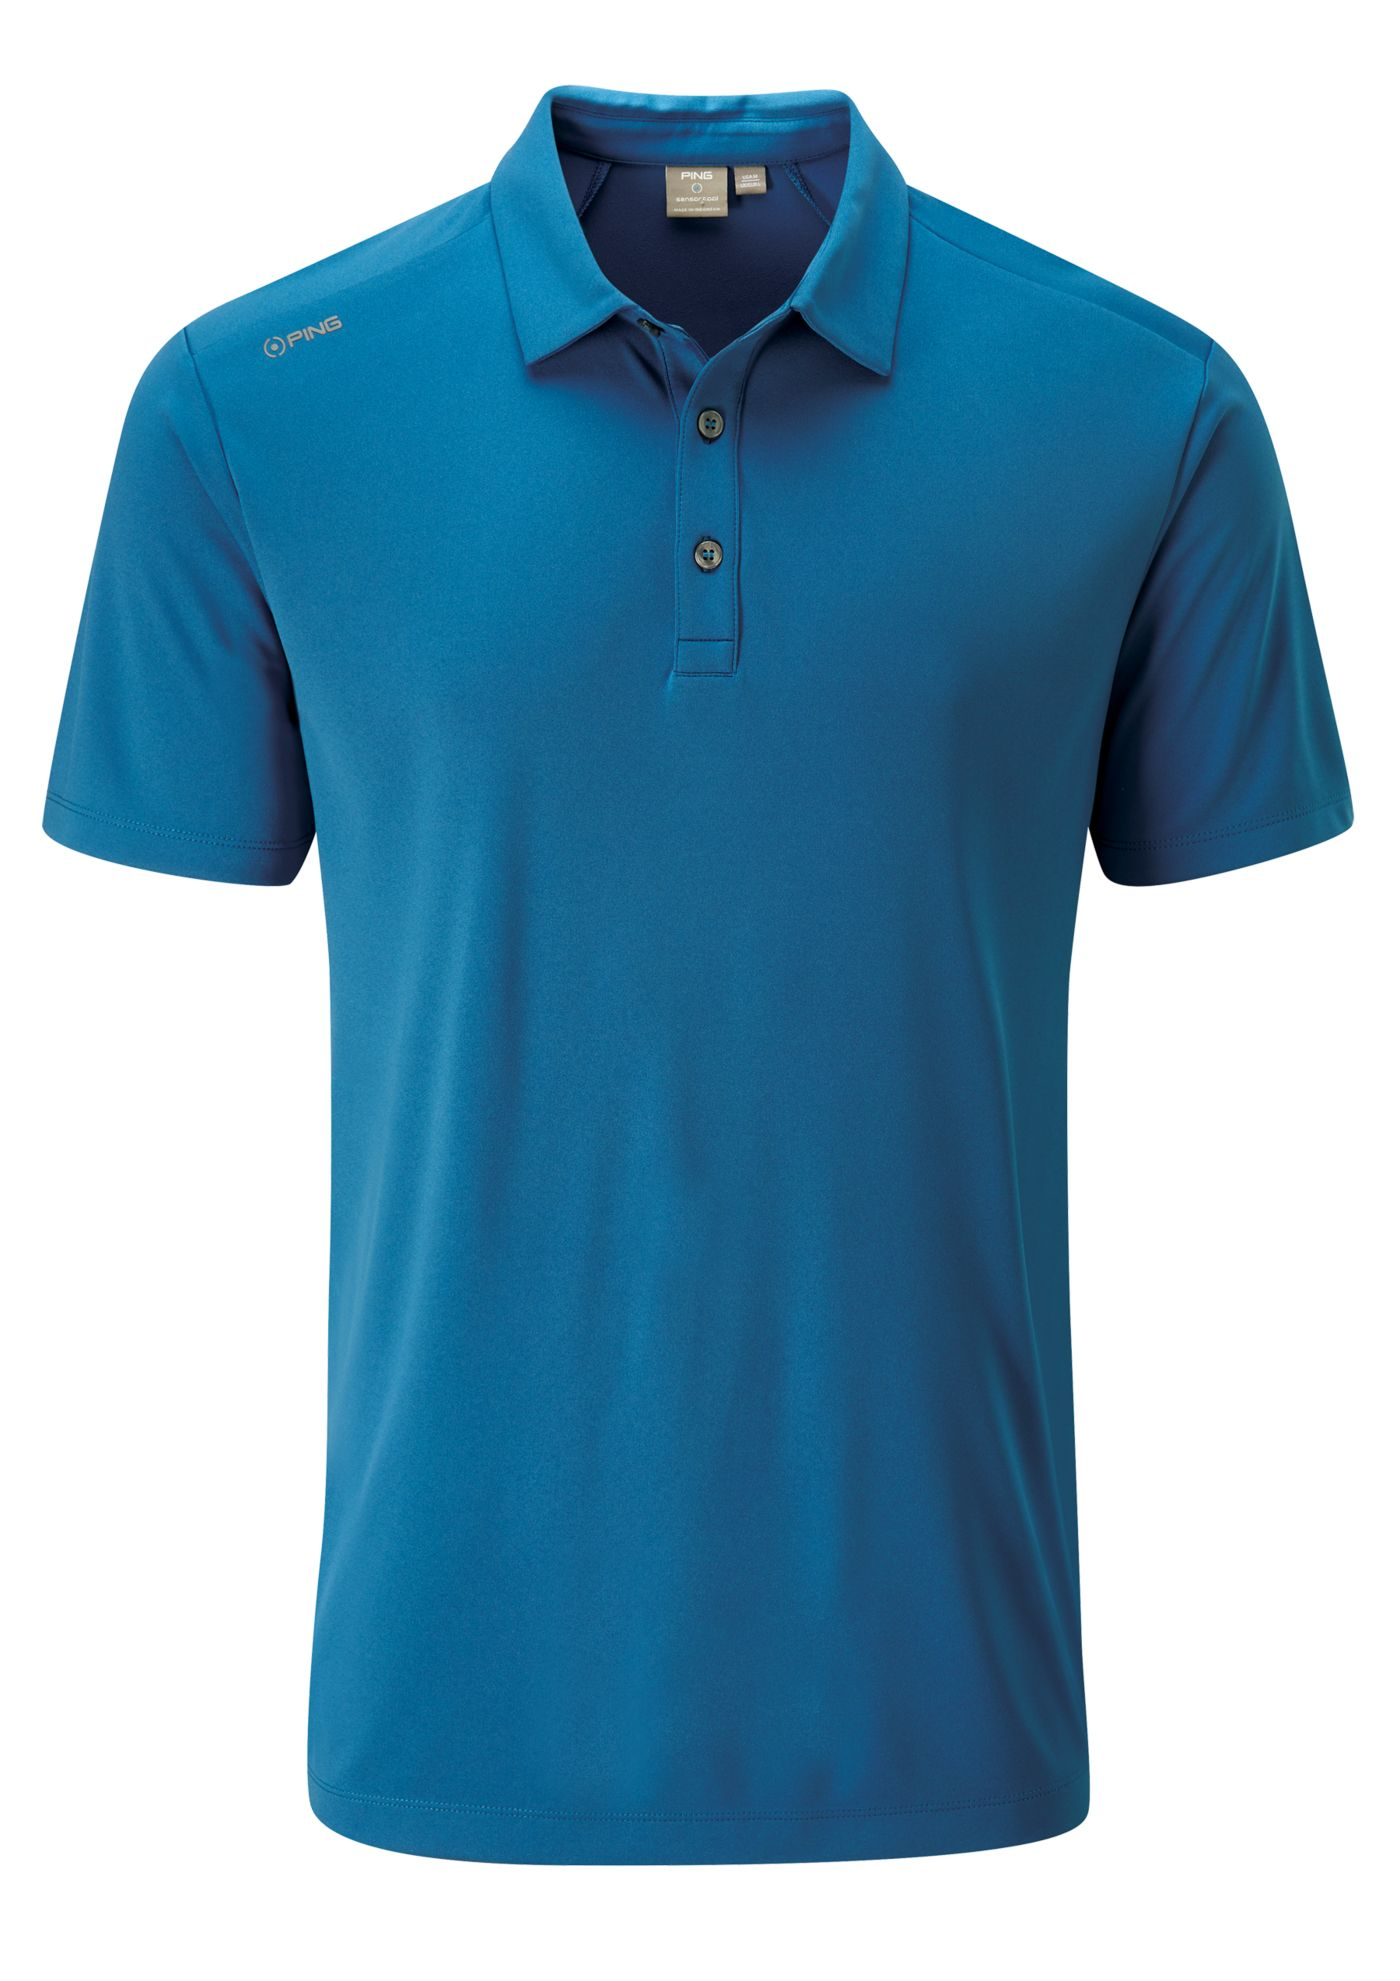 PING Men's Harrison Solid Short Sleeve Golf Polo